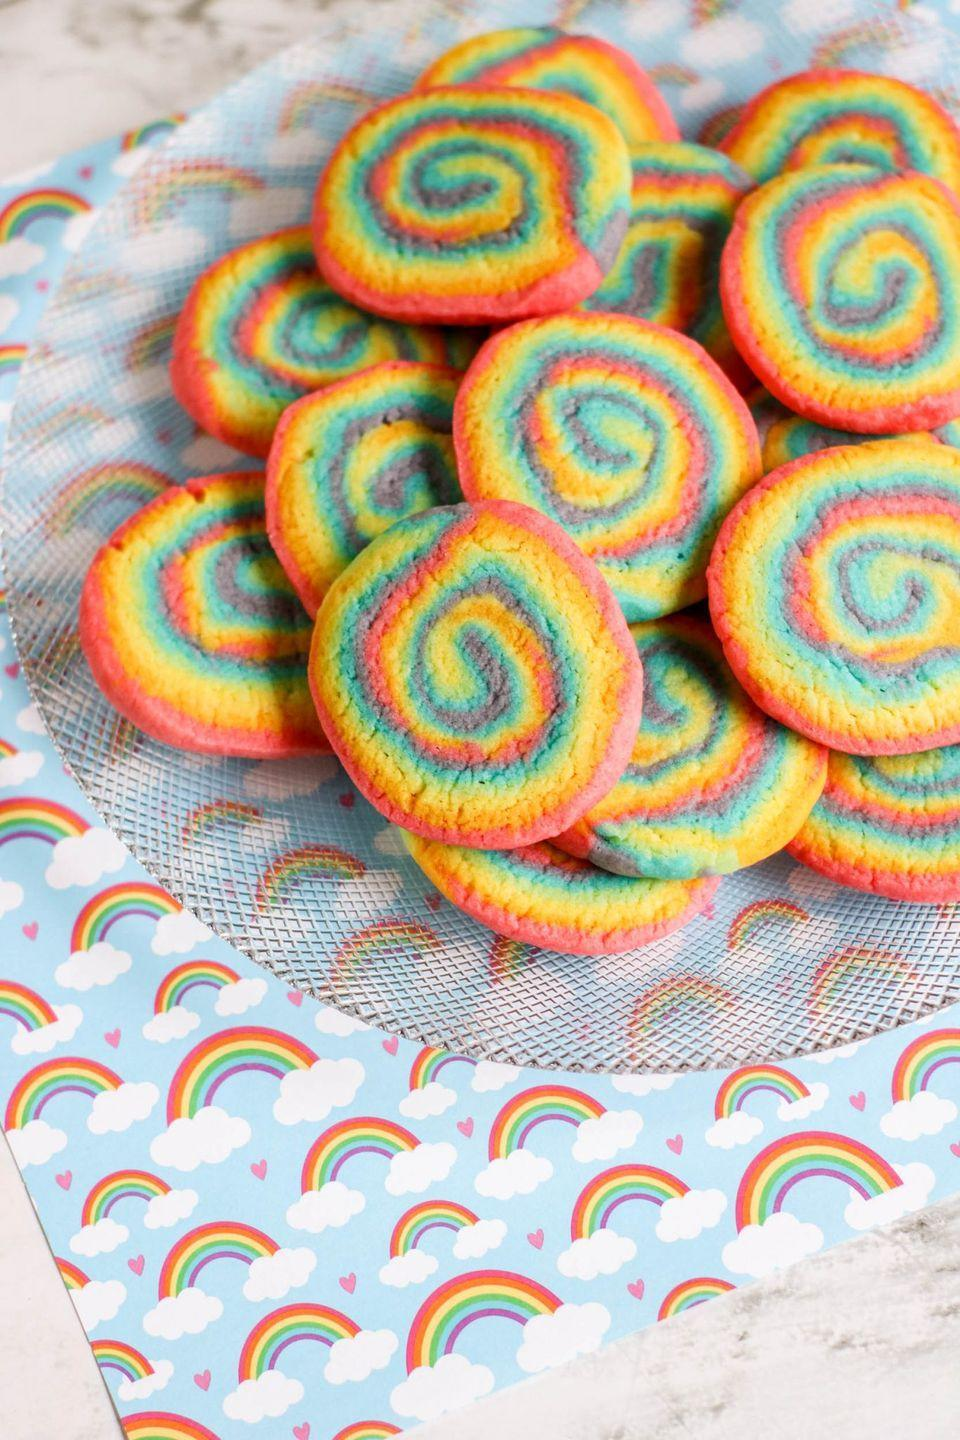 """<p>These slice-and-bake sugar cookies are easy to make. Layer the colors, roll the dough into a log, cut your cookies, then bake.</p><p><strong>Get the recipe at <a href=""""https://www.aboutamom.com/rainbow-swirl-cookies/"""" rel=""""nofollow noopener"""" target=""""_blank"""" data-ylk=""""slk:About a Mom"""" class=""""link rapid-noclick-resp"""">About a Mom</a>.</strong></p><p><strong><a class=""""link rapid-noclick-resp"""" href=""""https://go.redirectingat.com?id=74968X1596630&url=https%3A%2F%2Fwww.walmart.com%2Fsearch%2F%3Fquery%3Dcookie%2Btray&sref=https%3A%2F%2Fwww.thepioneerwoman.com%2Ffood-cooking%2Fmeals-menus%2Fg36421919%2Frainbow-recipes%2F"""" rel=""""nofollow noopener"""" target=""""_blank"""" data-ylk=""""slk:SHOP COOKIE SHEETS"""">SHOP COOKIE SHEETS</a><br></strong></p>"""